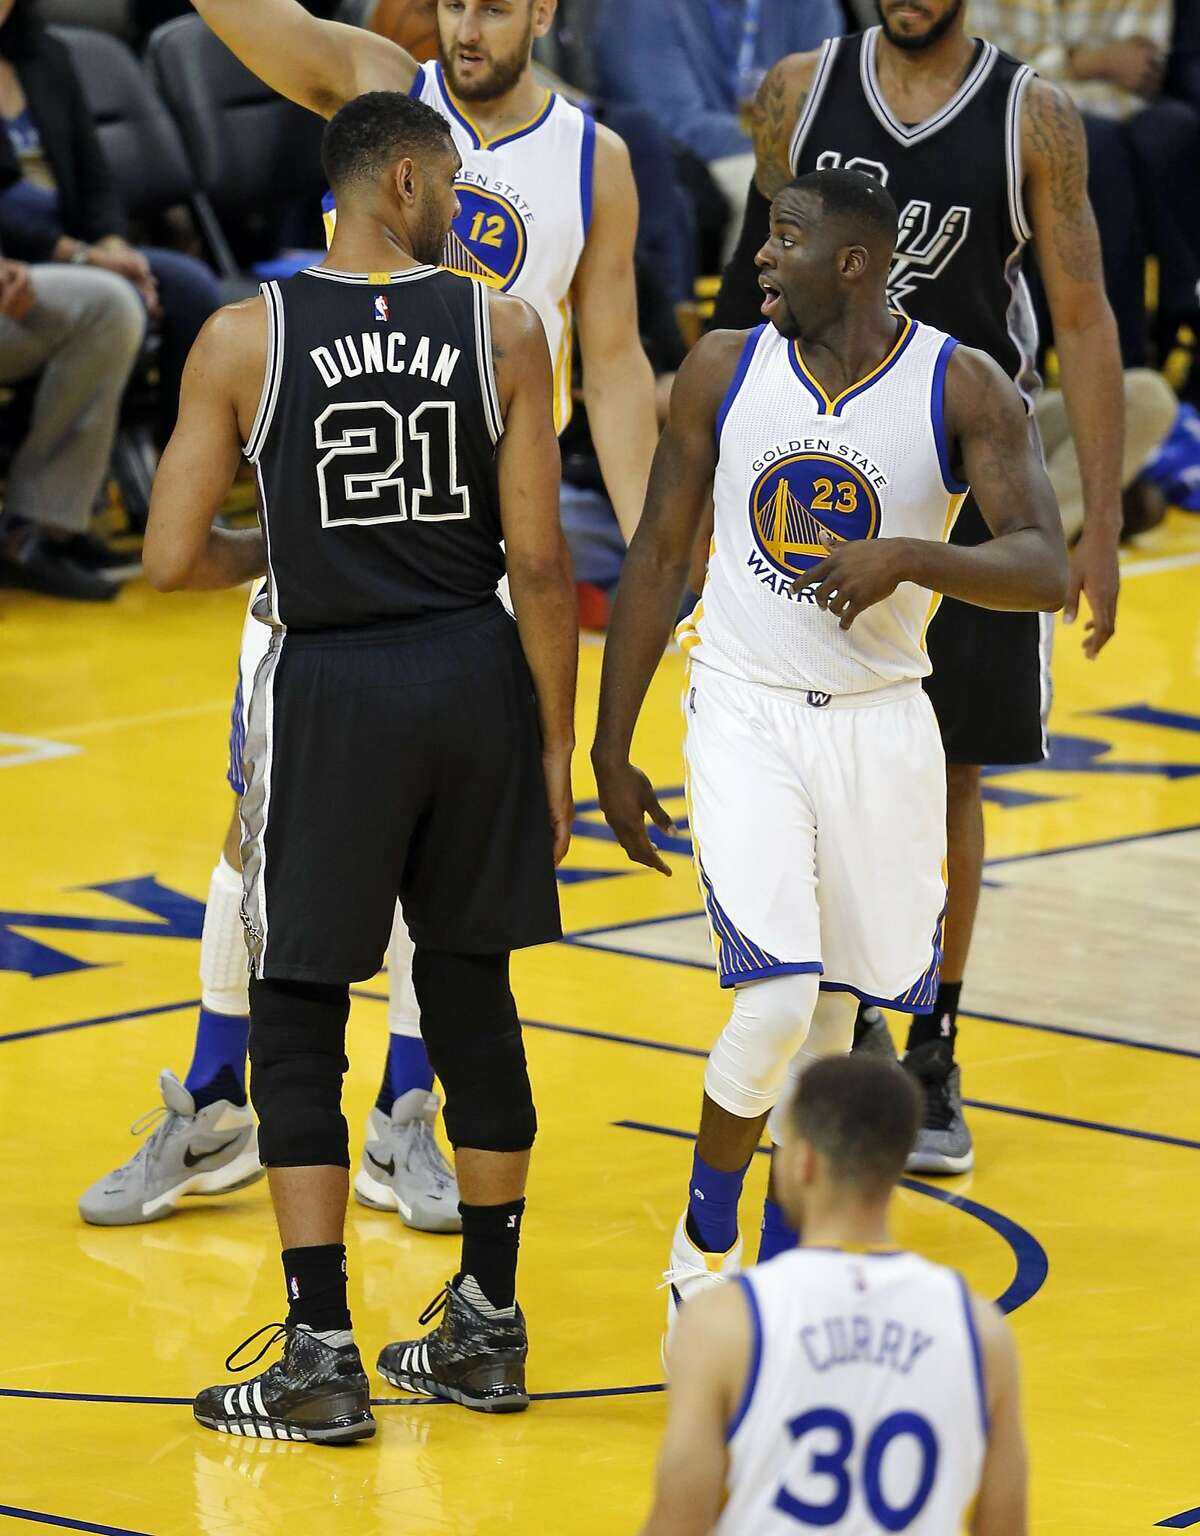 Golden State Warriors' Draymond Green has words with San Antonio Spurs' Tim Duncan in 3rd quarter during NBA game at Oracle Arena in Oakland, Calif., on Thursday, April 7, 2016.